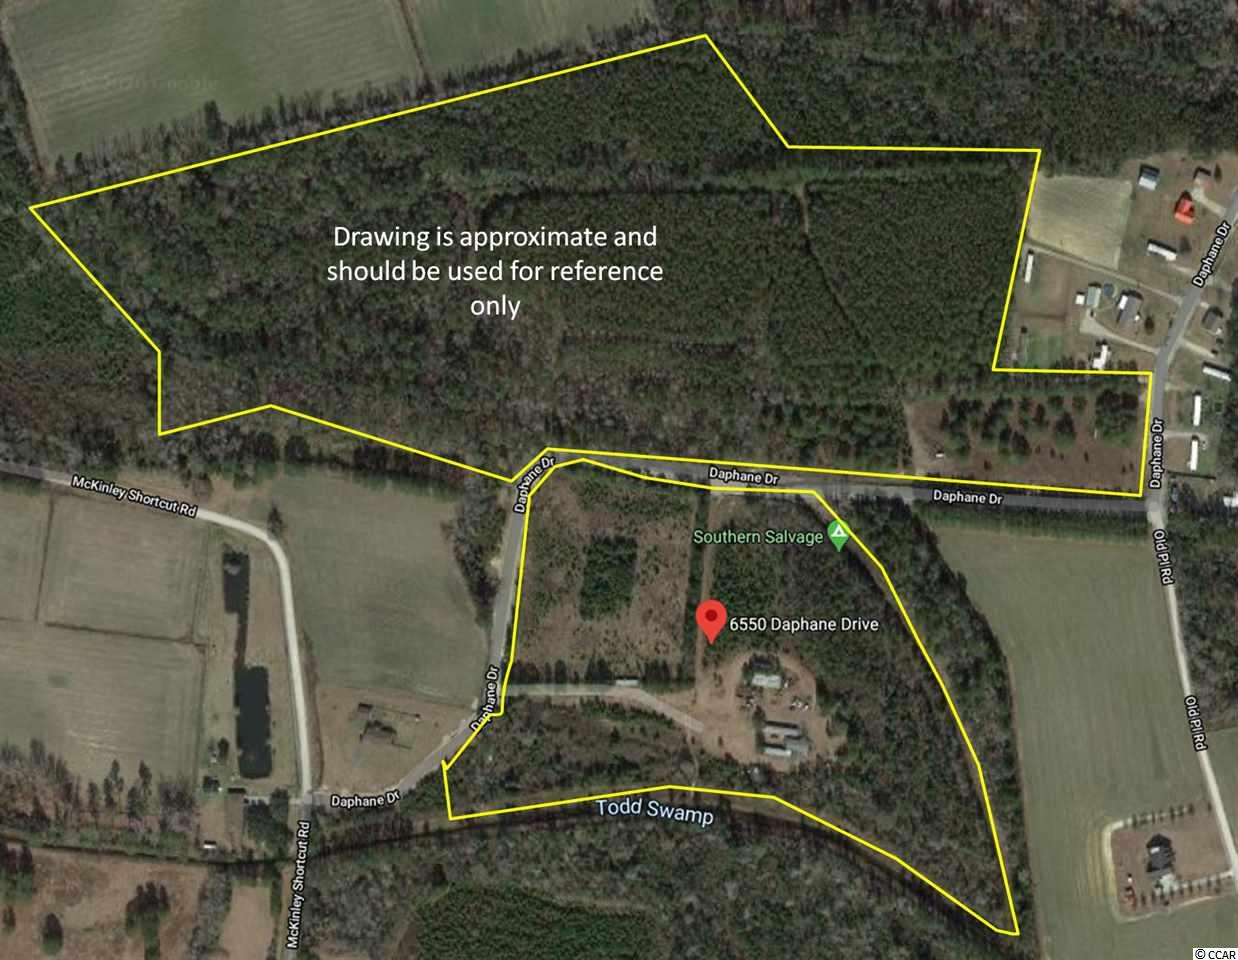 There are (7) 1/2 acre lots available zoned as MSF 14.5 for residential use of all collective structural categories, stick built, modular,andmanufactured. Public Water/Sewer Available. NOT IN A FLOOD ZONE. Easy access to area beaches and amenitiesconvenientlylocated less than a mile from the Highway 905/Highway 22 Junction. Excellent Tractfor residential community, RV Resort,Industrial,Commercial, Recreational uses and the like. The multi acre lots are Zoned PDD allowing for mixture of residential, commercial,office,industrial uses on this single site. Prime Development Tract other lots available totalling approx 50 acres. PDD parcels havebeenapproved for Campground/RV Resort use but can be rezoned.